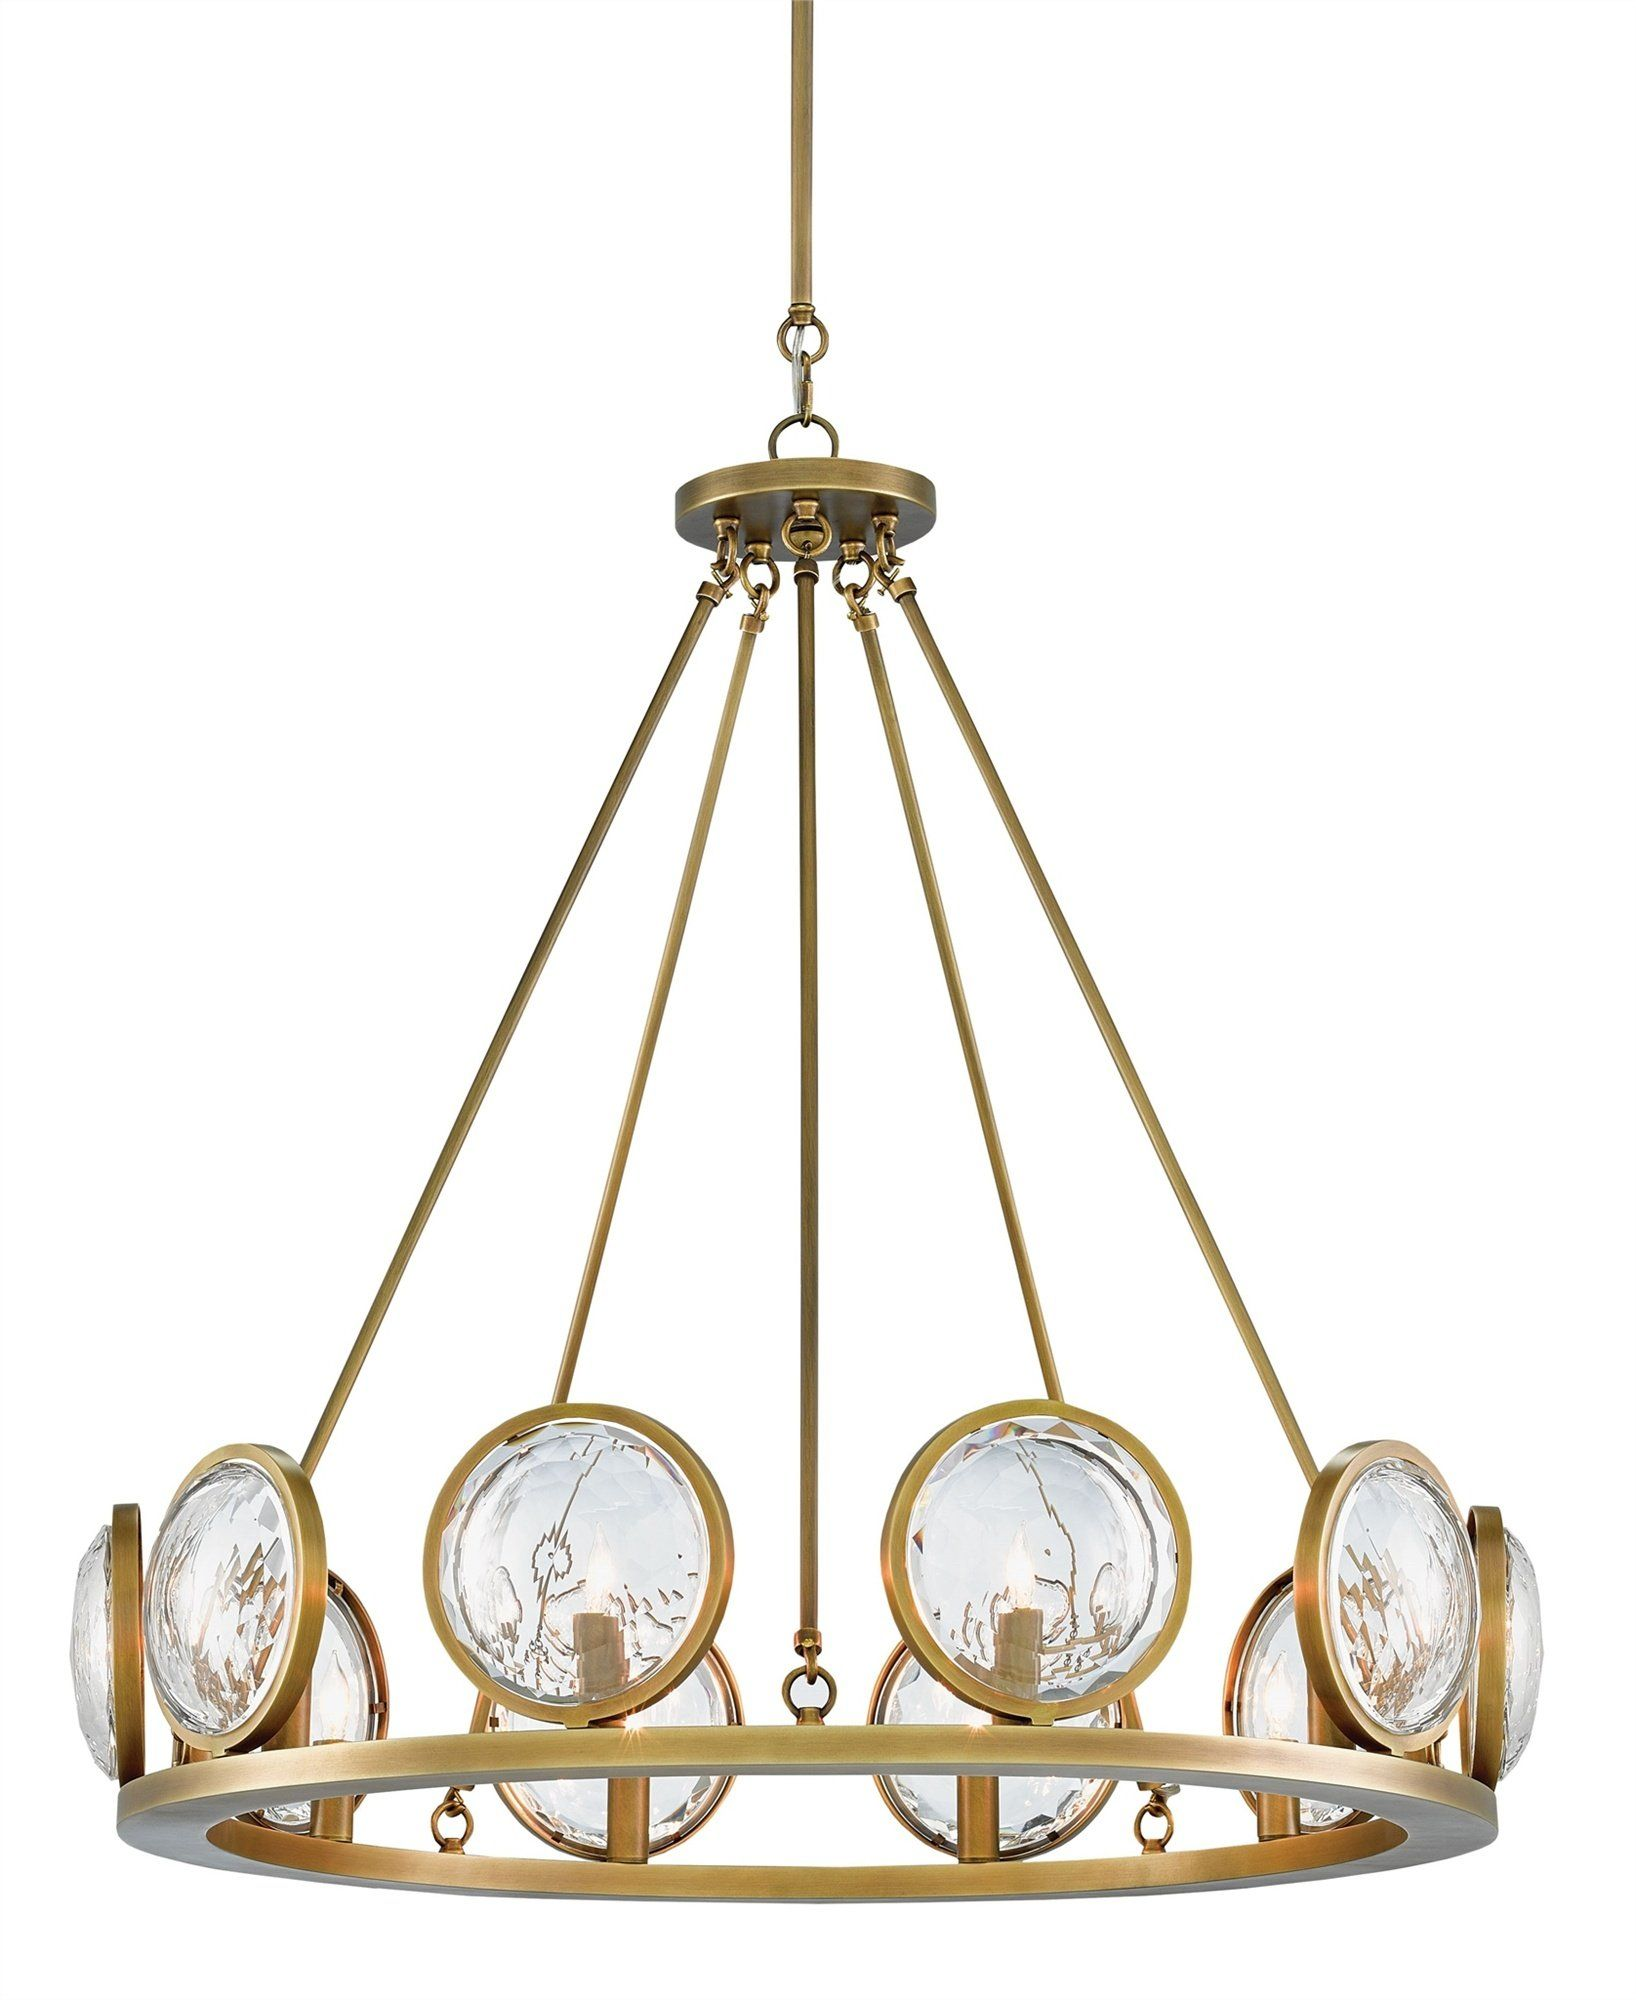 Currey and Company Marjiescope Chandelier 9000-0119 - LOVECUP